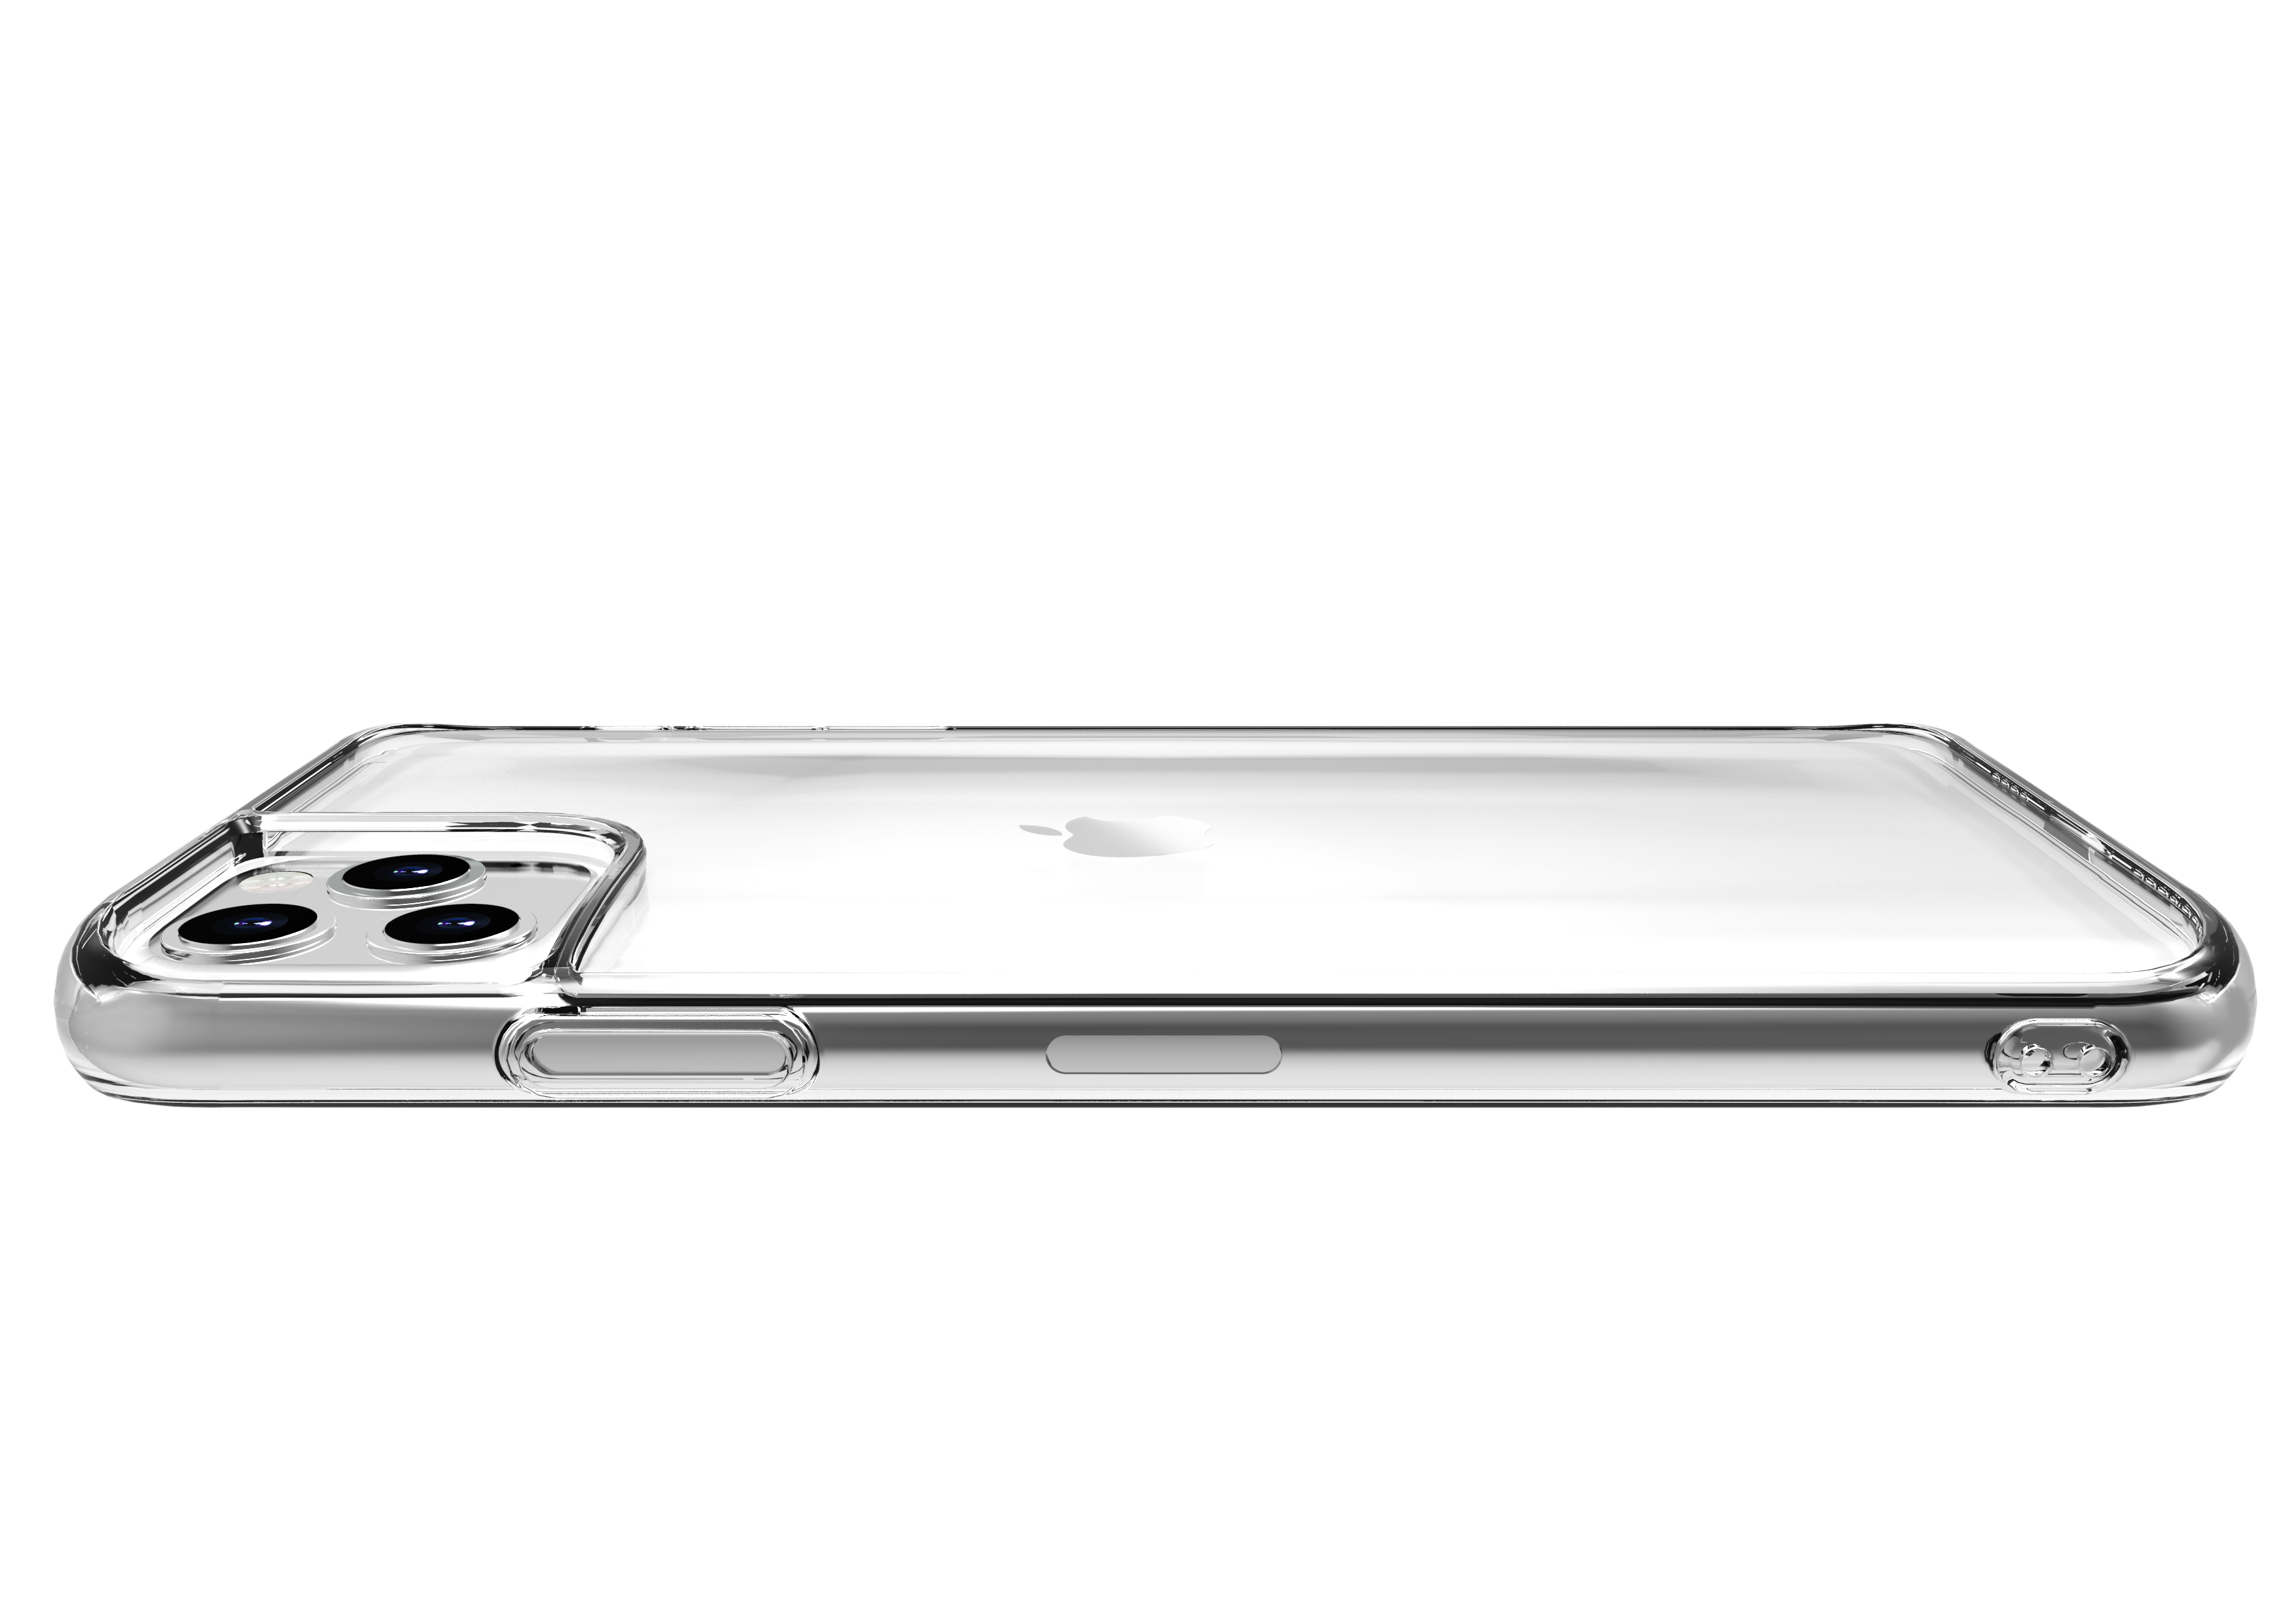 iPhone11 Pro Max-Silver for pro ADM